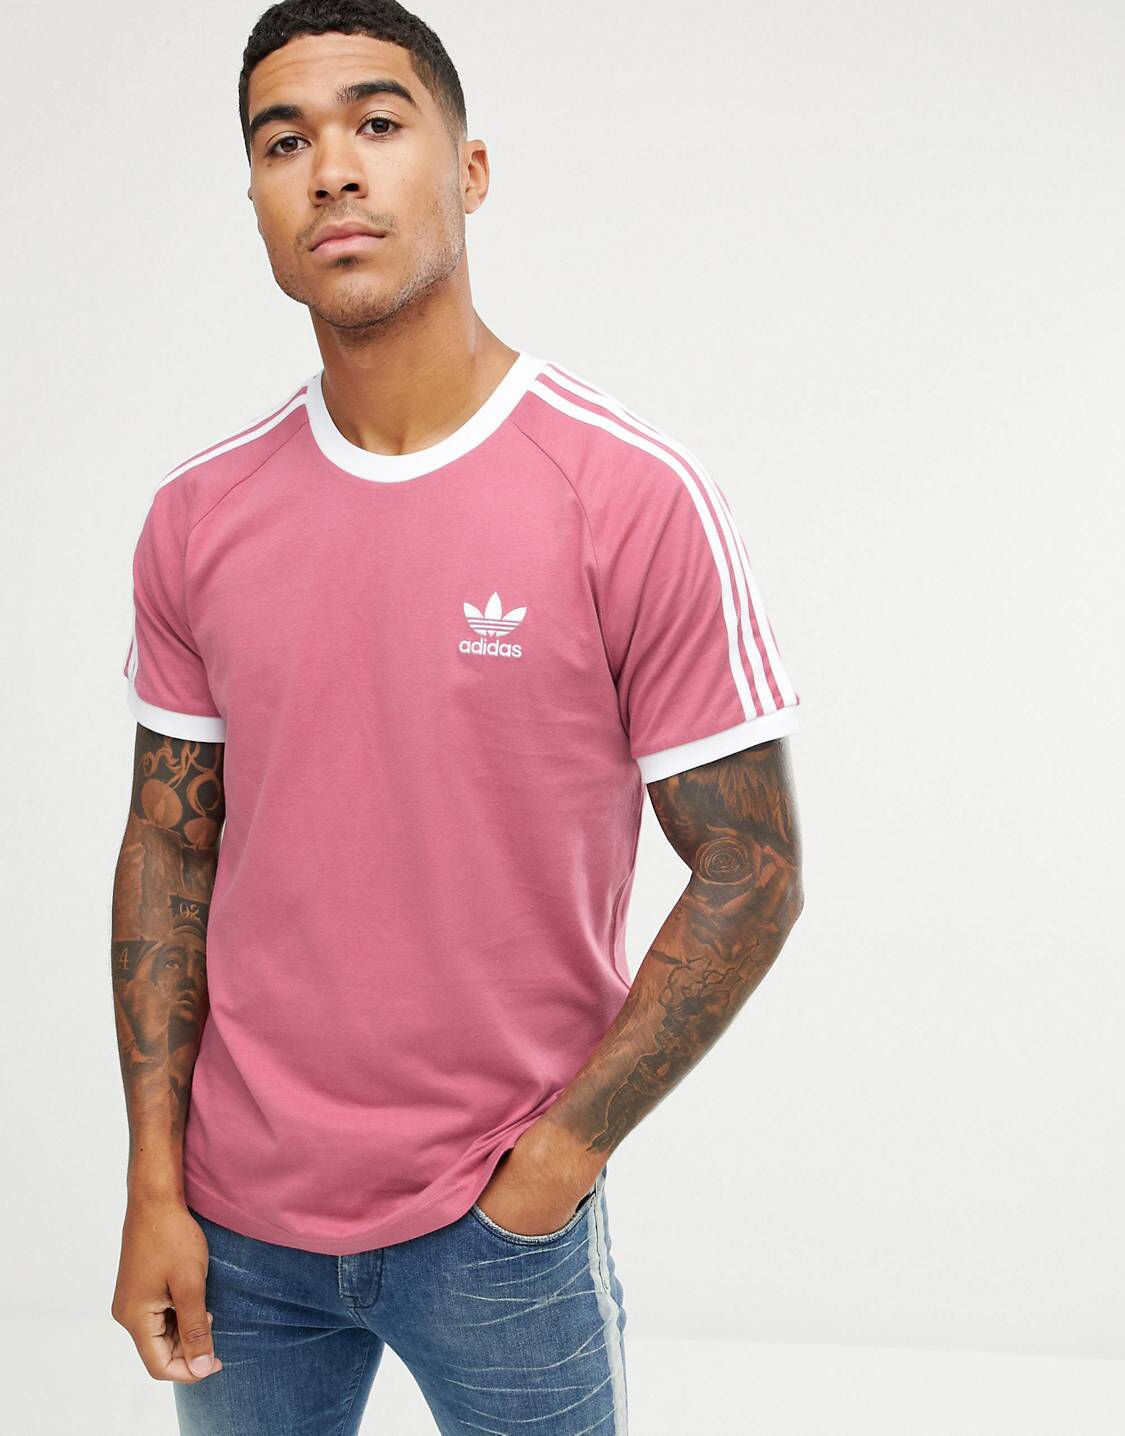 Corresponsal salud Incierto  Just when I thought I didn't need something new from ASOS, I kinda do |  Mens tee shirts, Adidas originals mens, T shirt